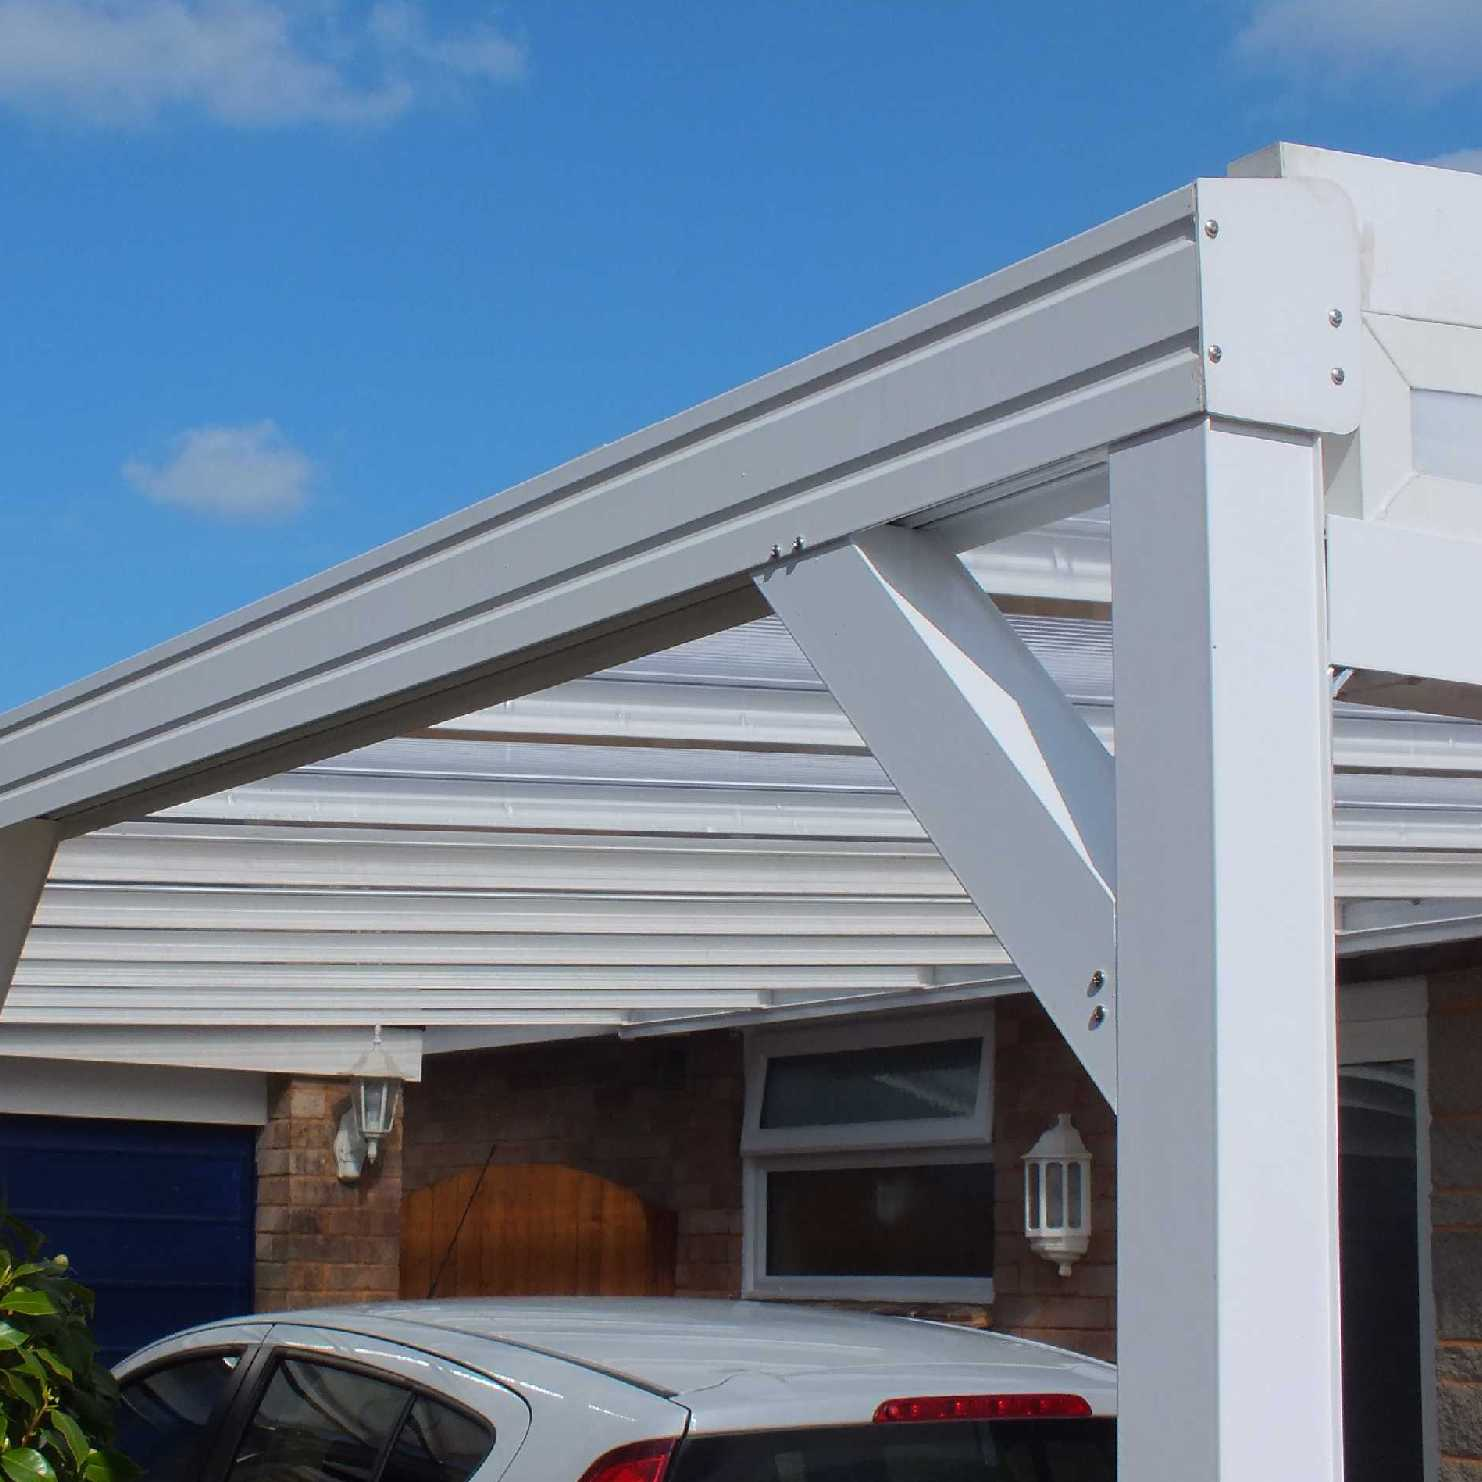 Buy Omega Smart Lean-To Canopy with 16mm Polycarbonate Glazing - 4.2m (W) x 4.0m (P), (3) Supporting Posts online today